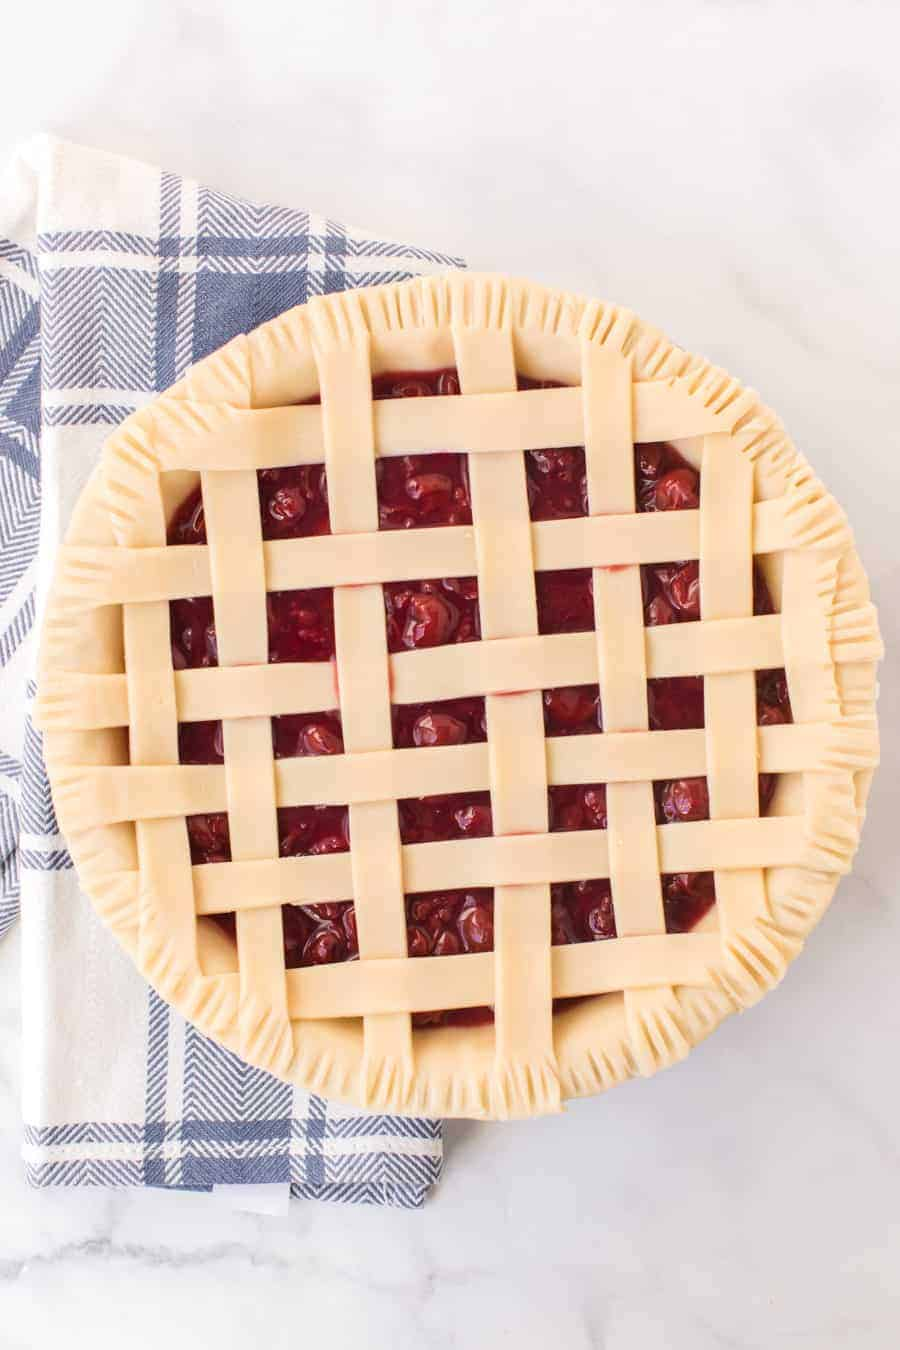 unbaked cherry pie with criss cross pie crust resting on blue and white checkered towel on white countertop